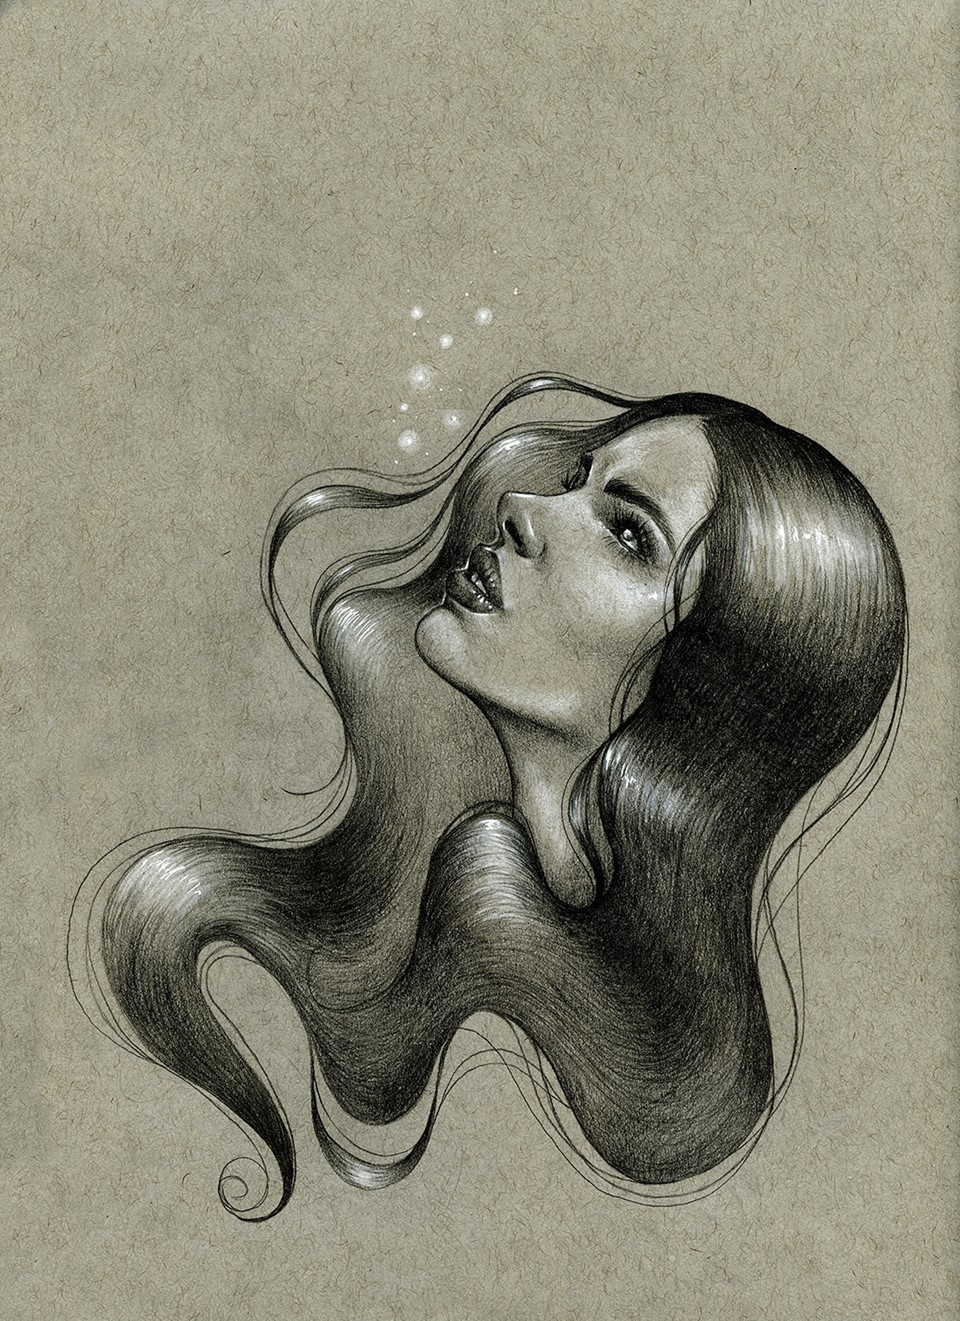 Sketch by artist Holly Khraibani